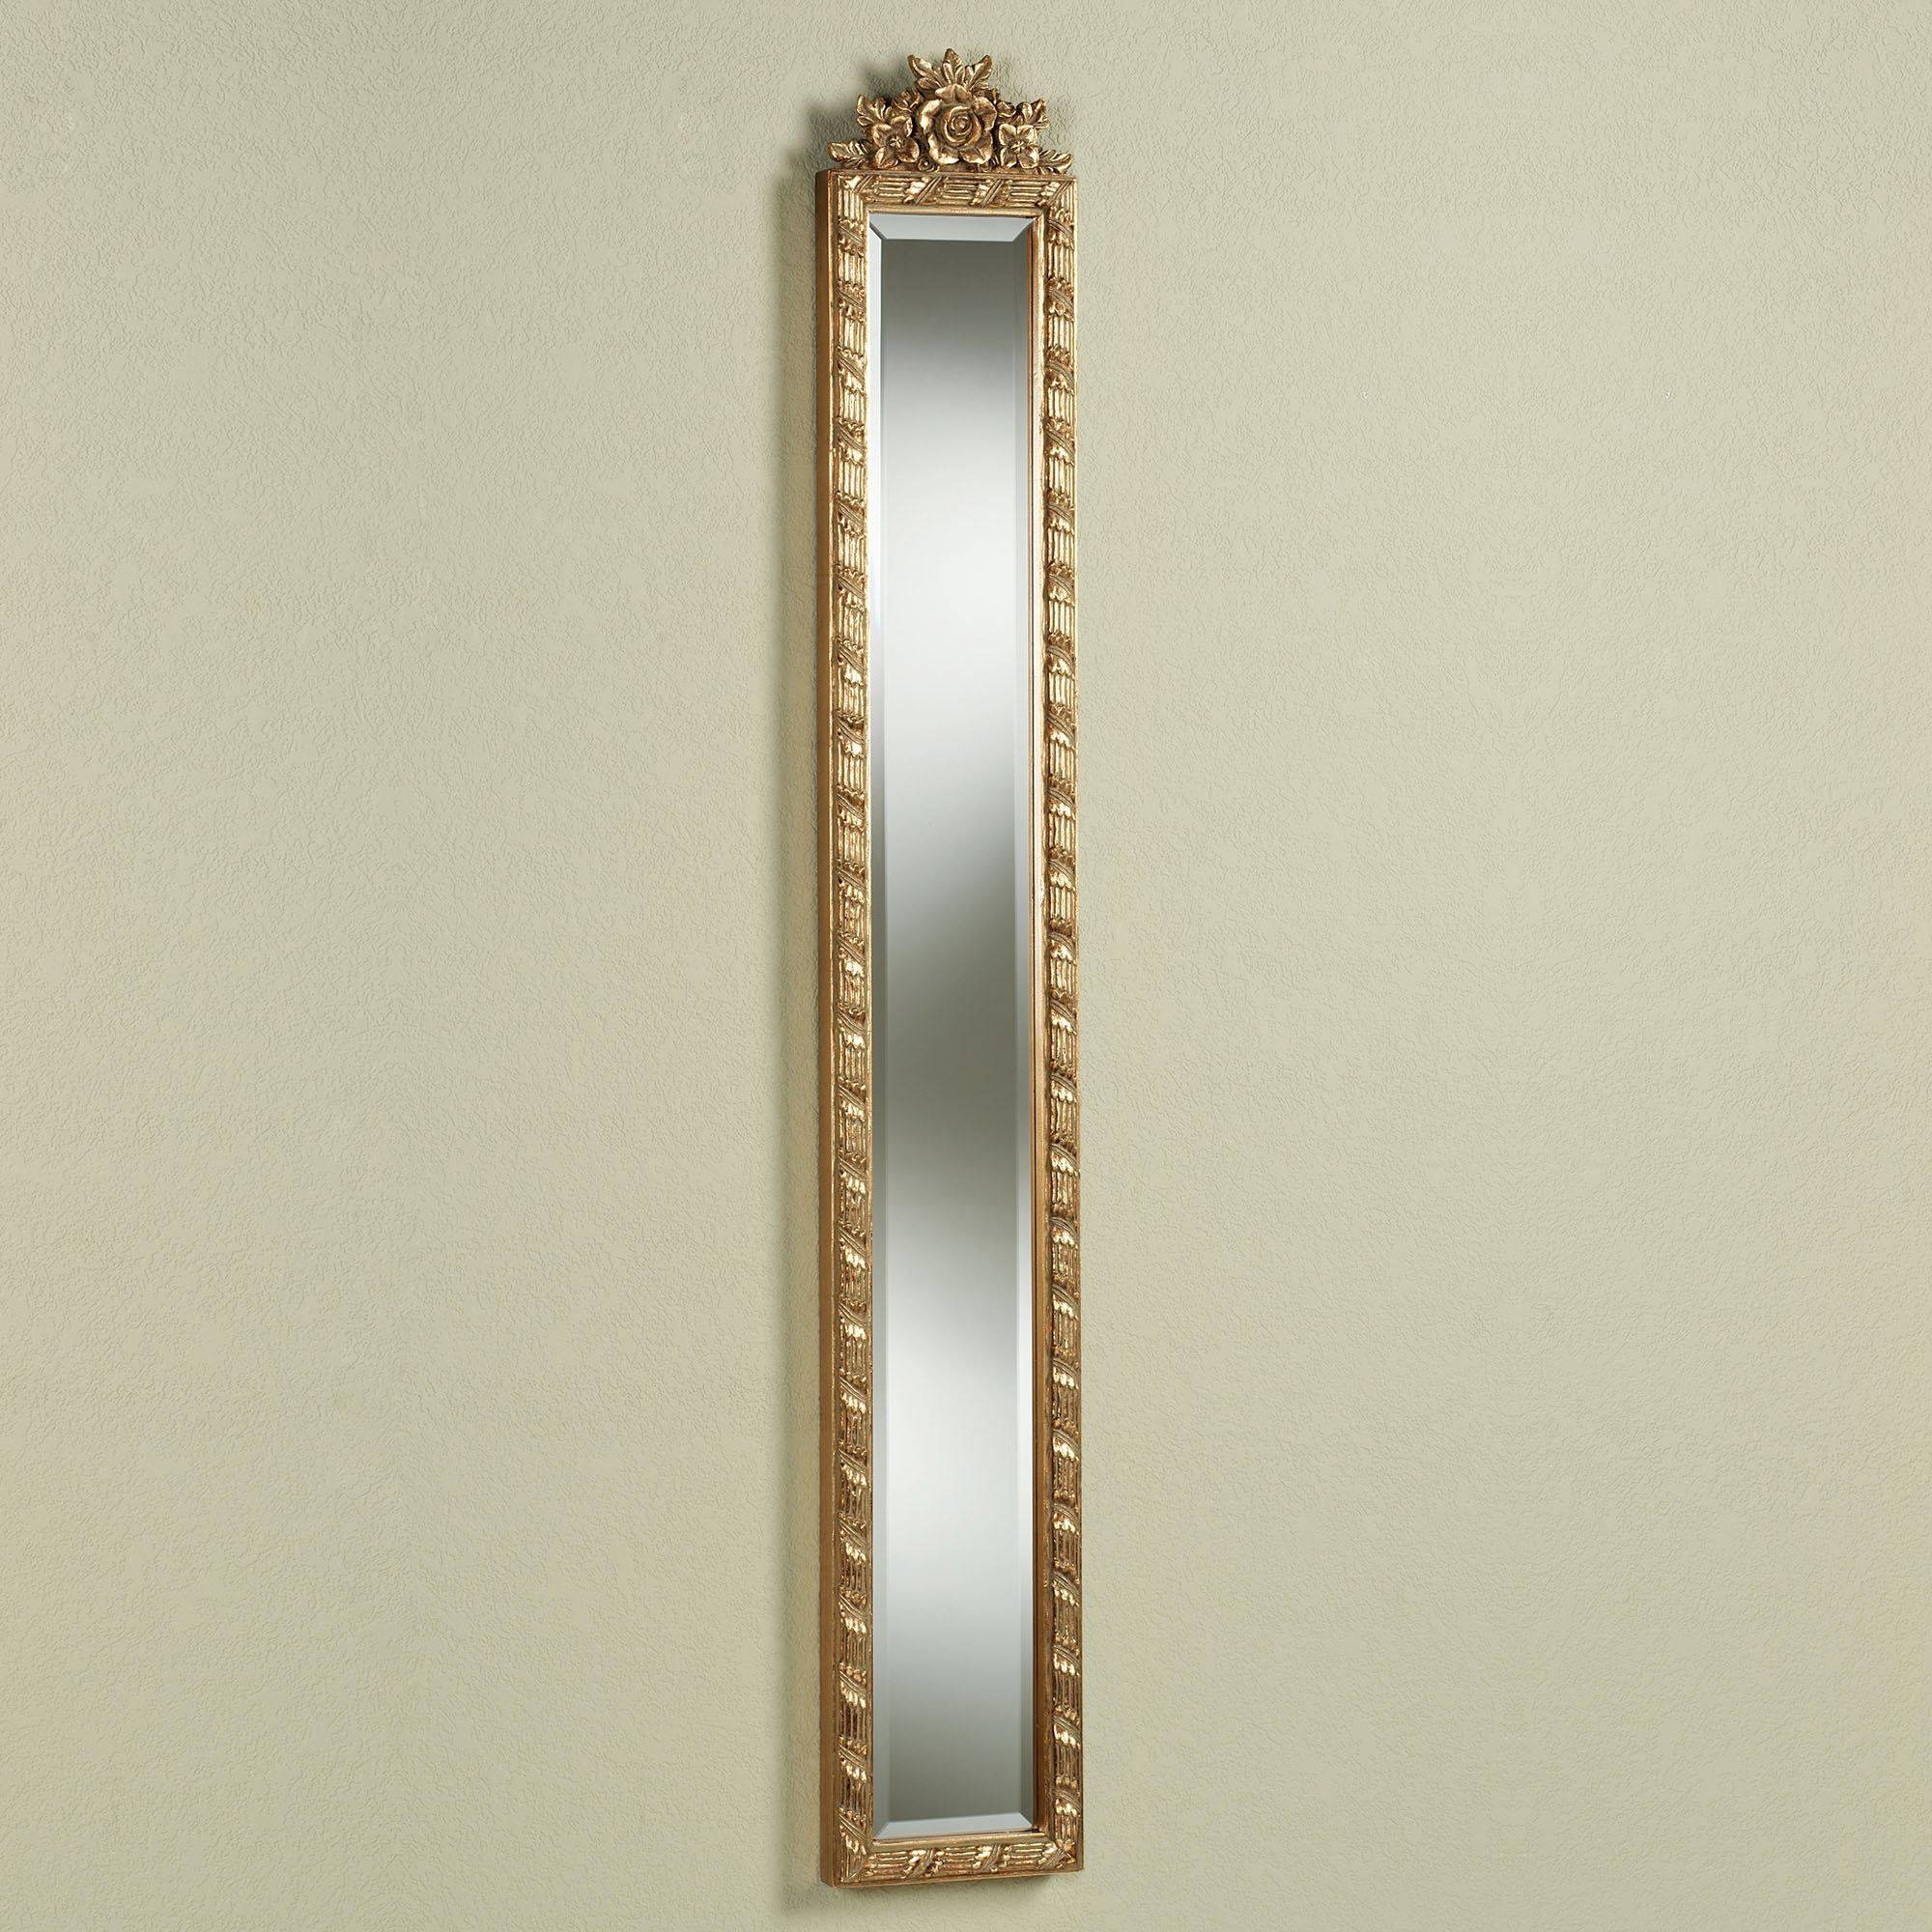 Giuliana Antique Gold Floral Wall Mirror Panel throughout Long Gold Mirrors (Image 16 of 25)